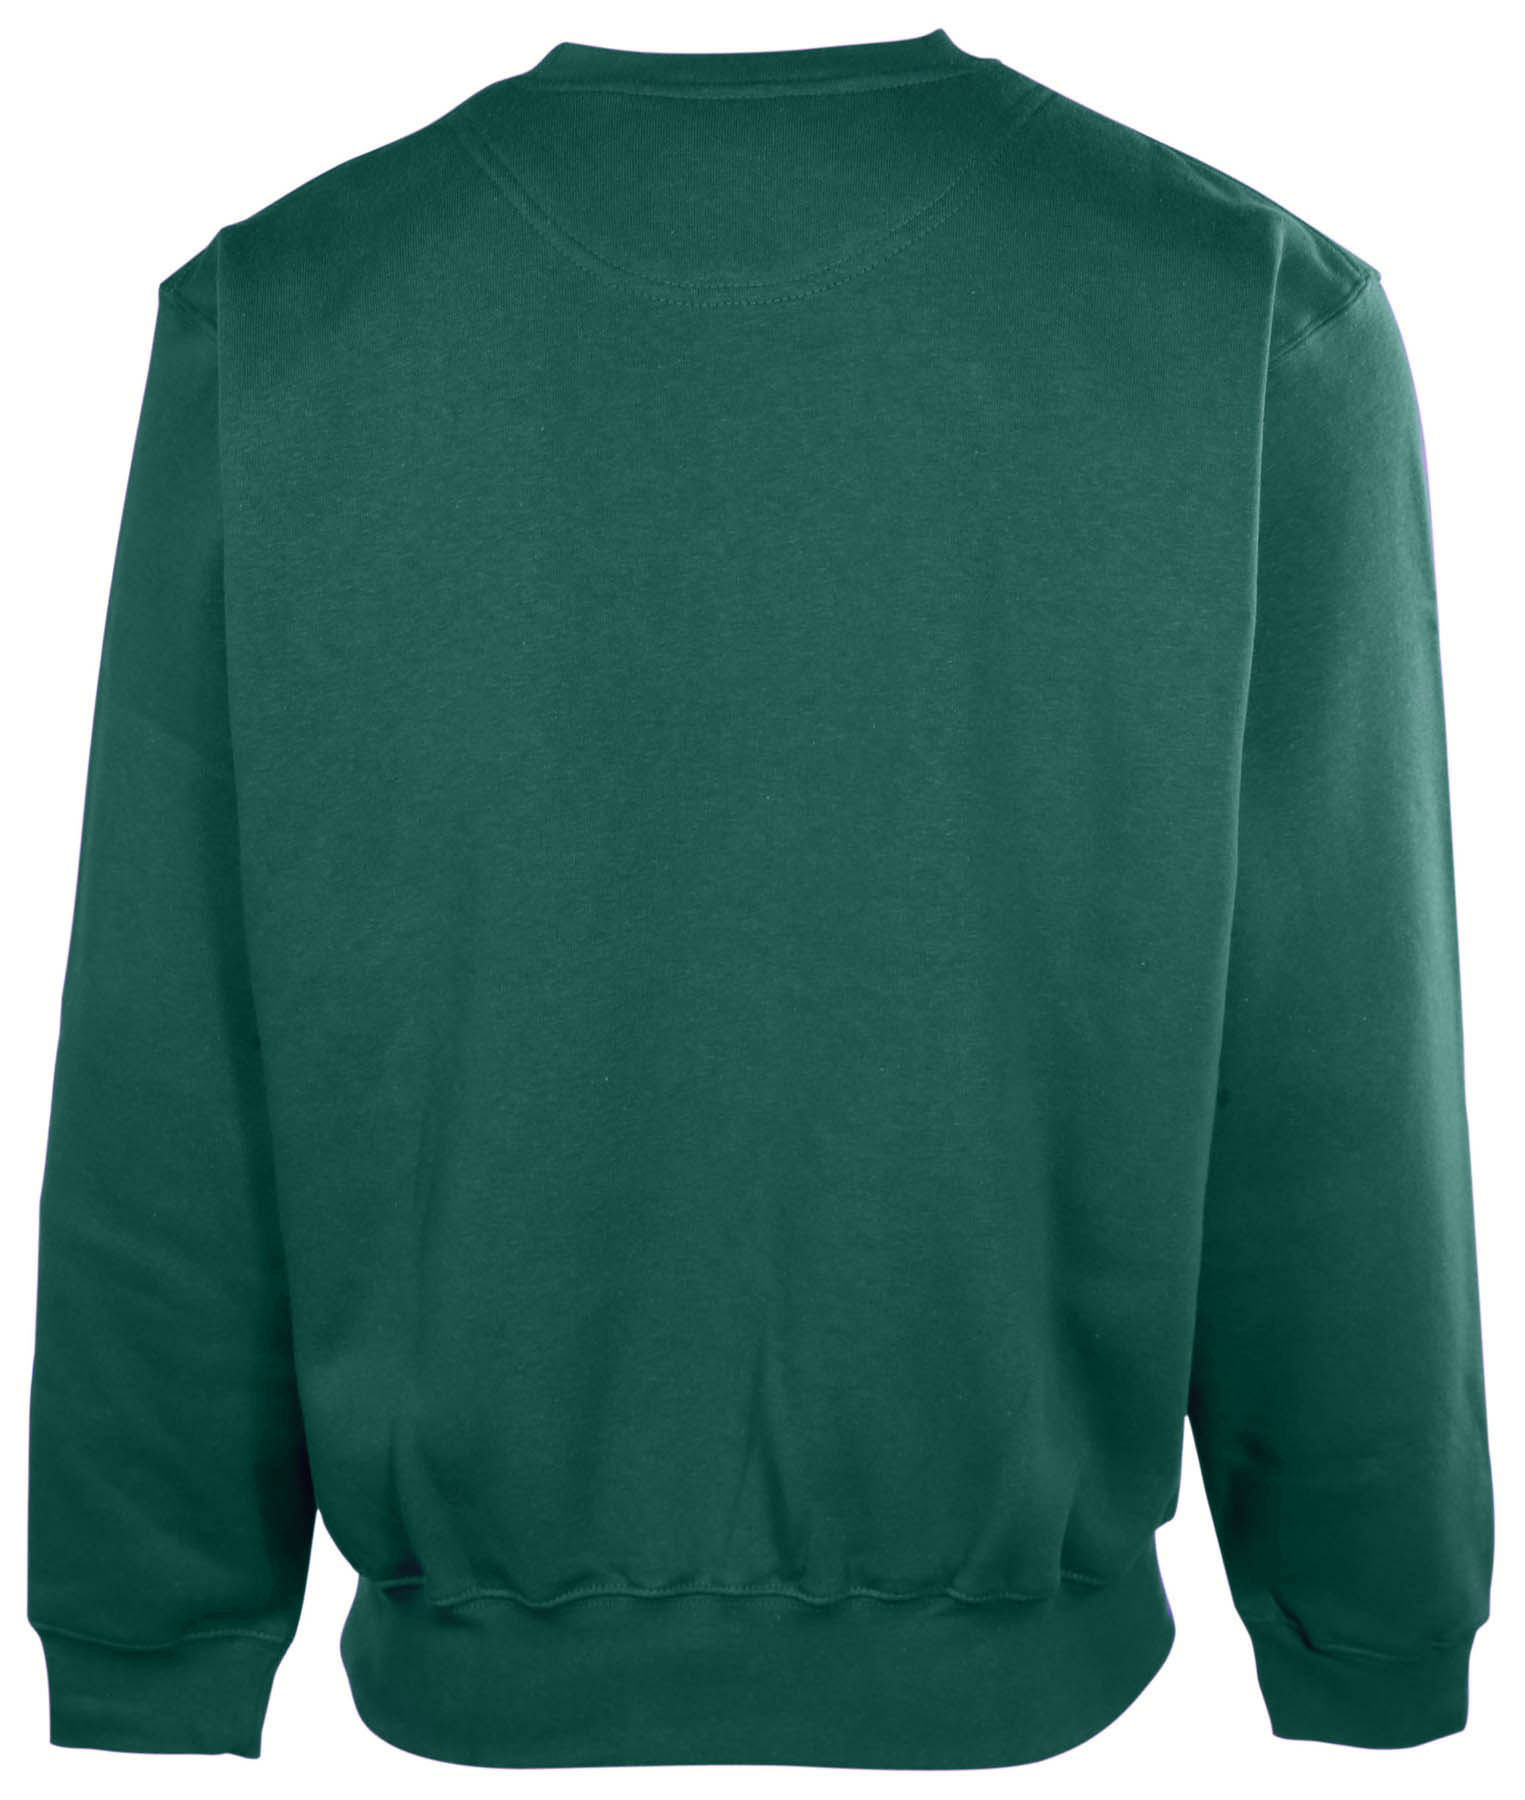 Nike Men's Team Crew Neck Fleece Pullover Sweatshirt - Walmart.com